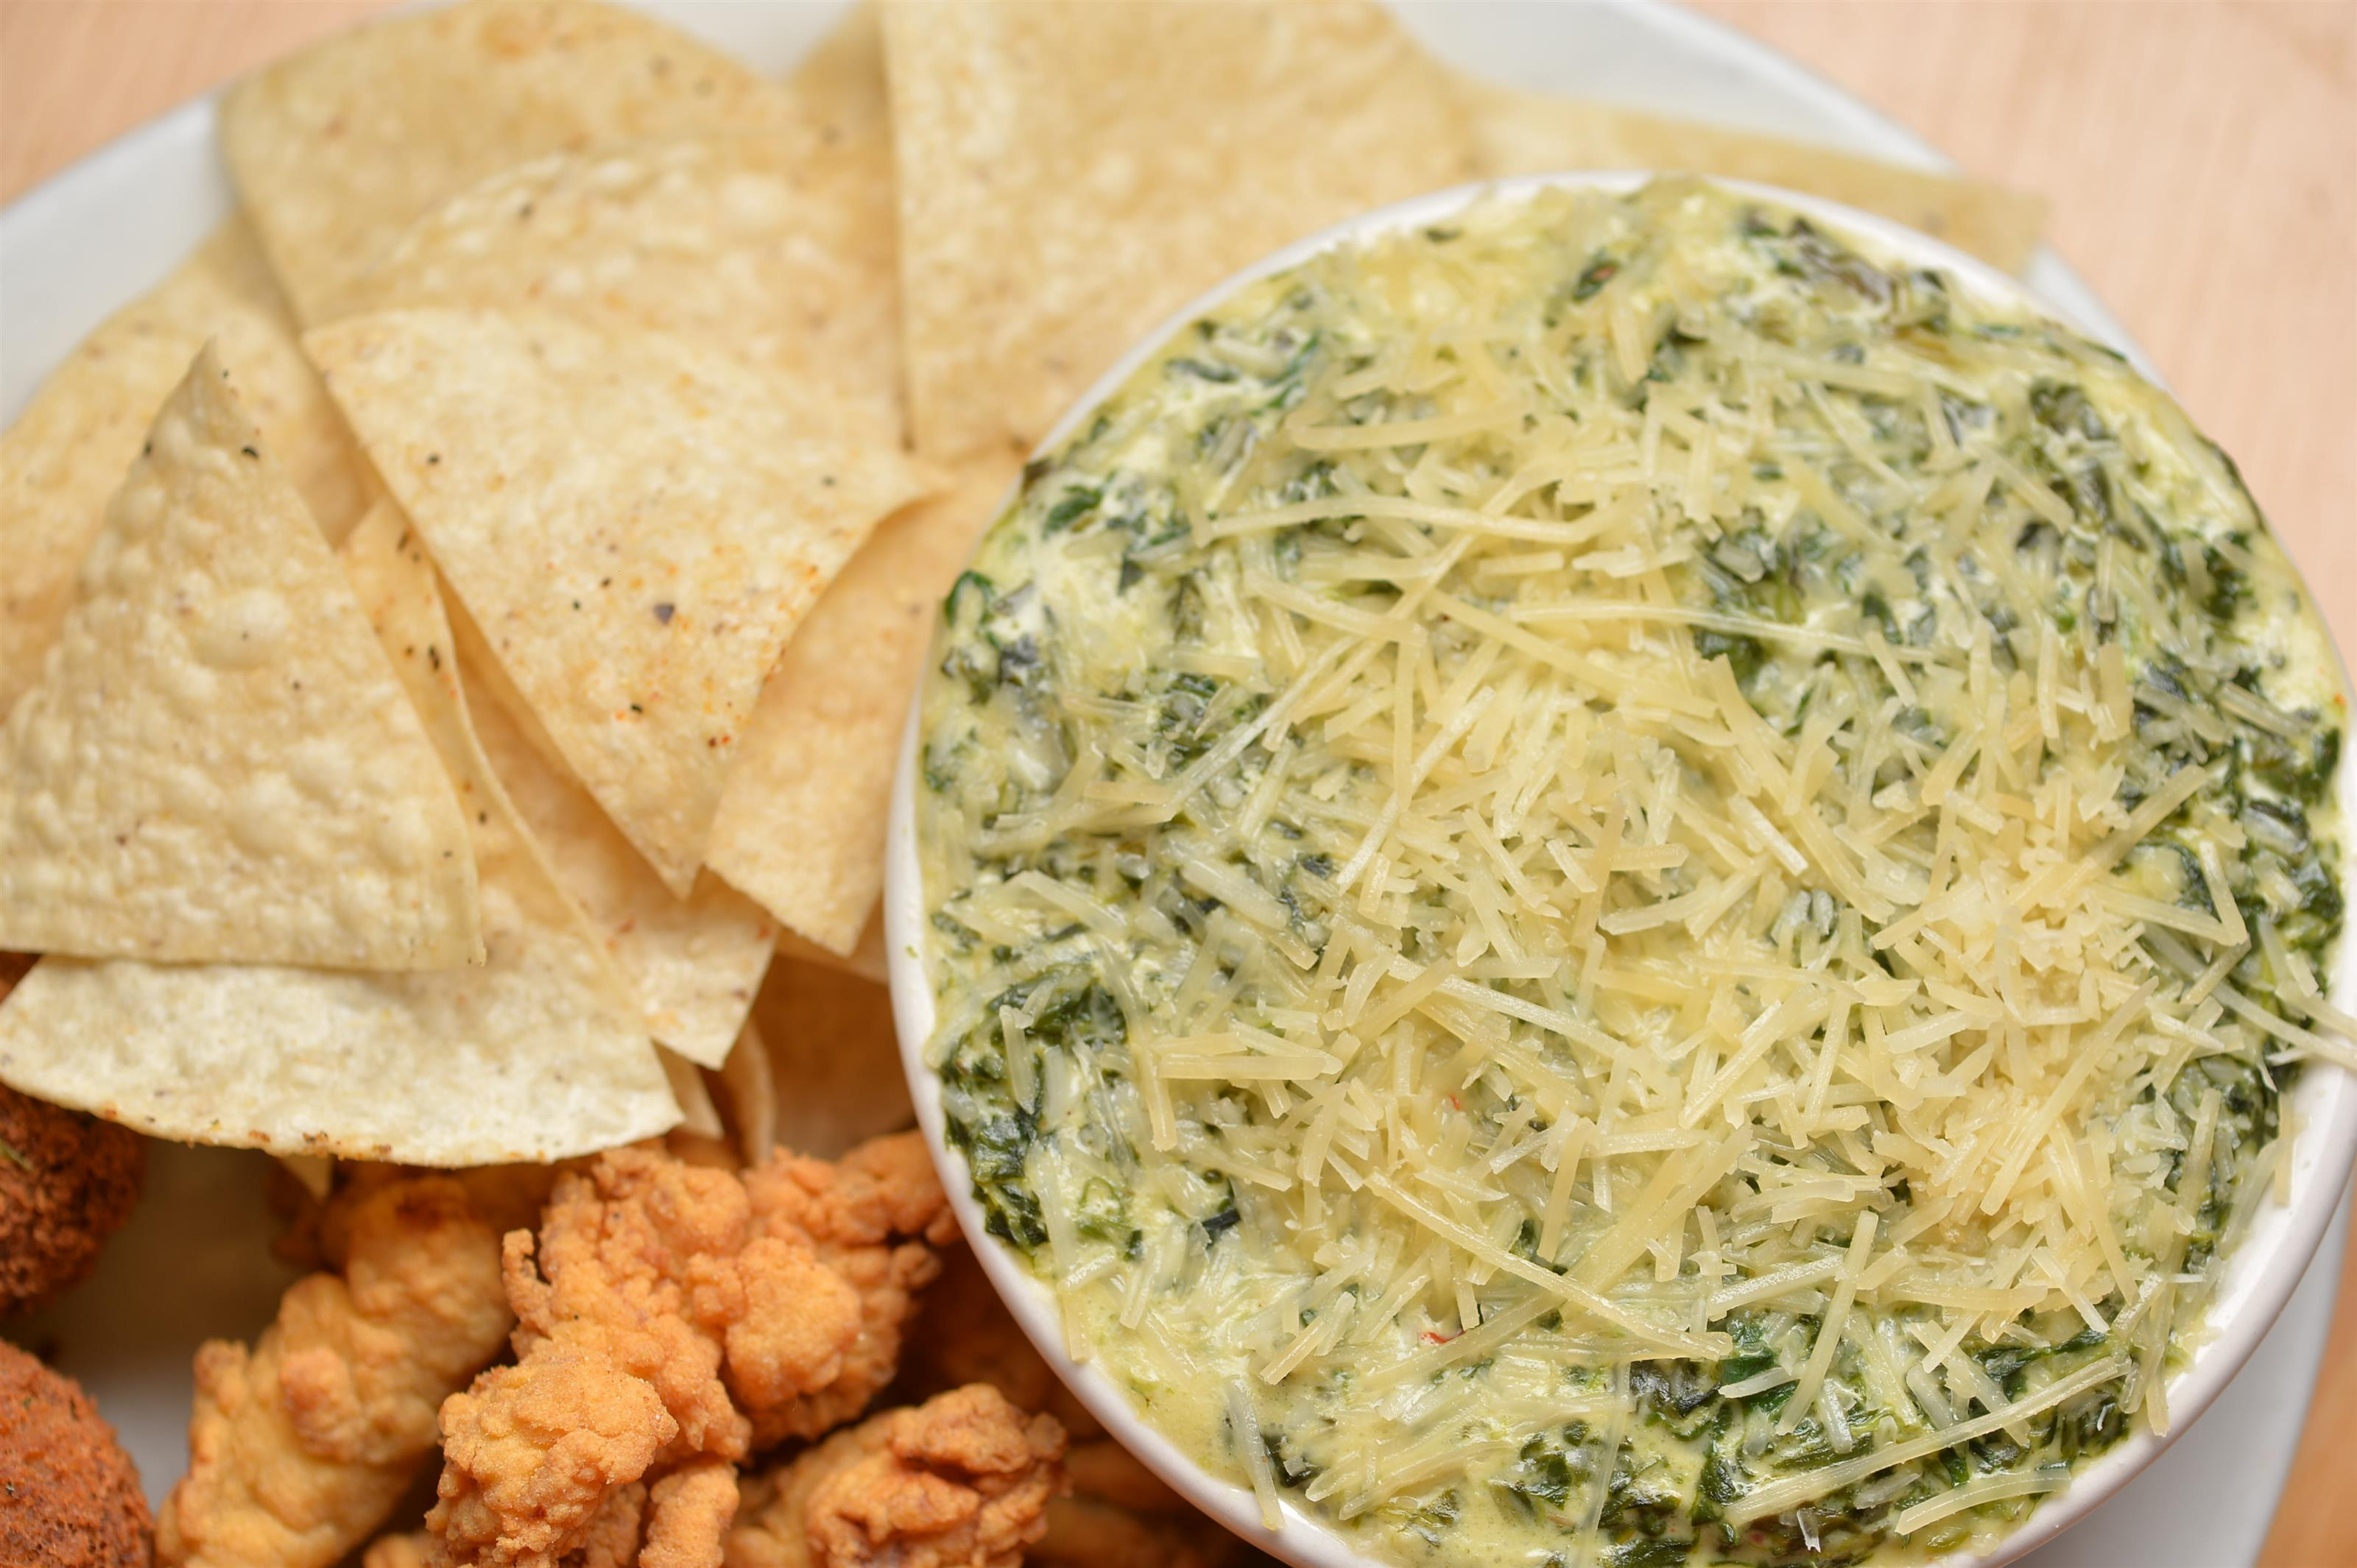 spinach dip and chips with popcorn chicken